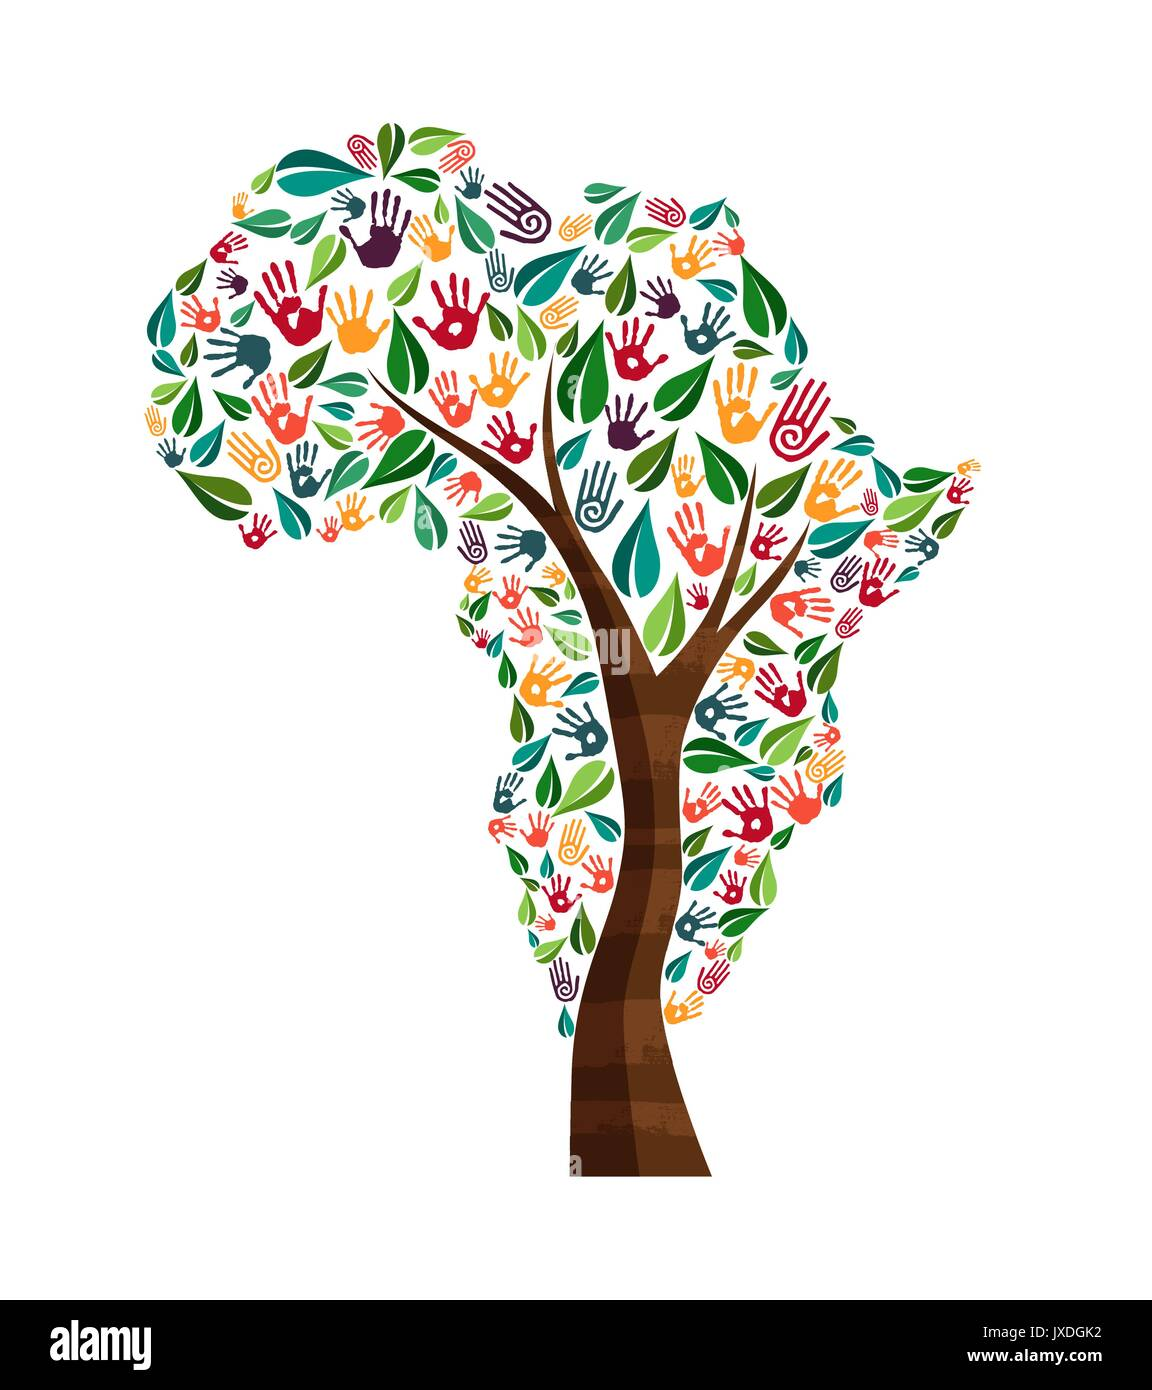 Tree With African Continent Shape And Human Hand Prints Africa World Help Concept Illustration For